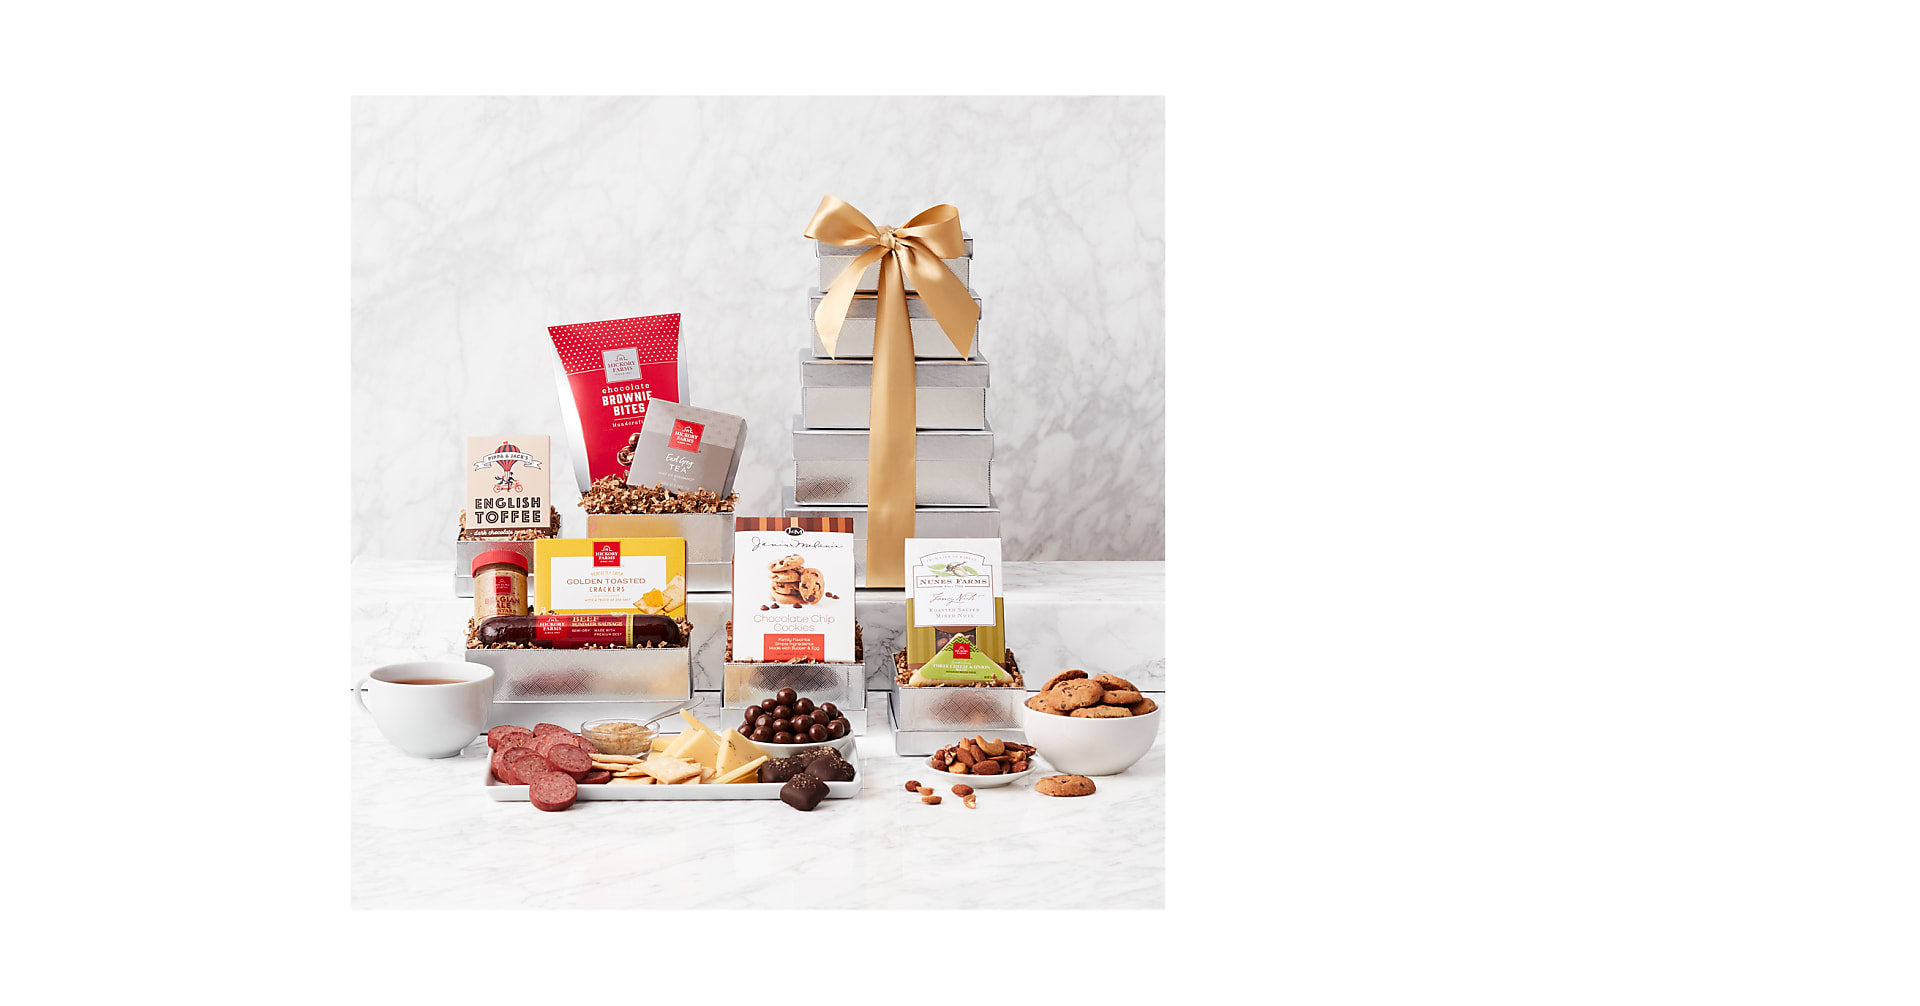 Shimmering Seasons Gourmet Tower - Image 1 Of 2